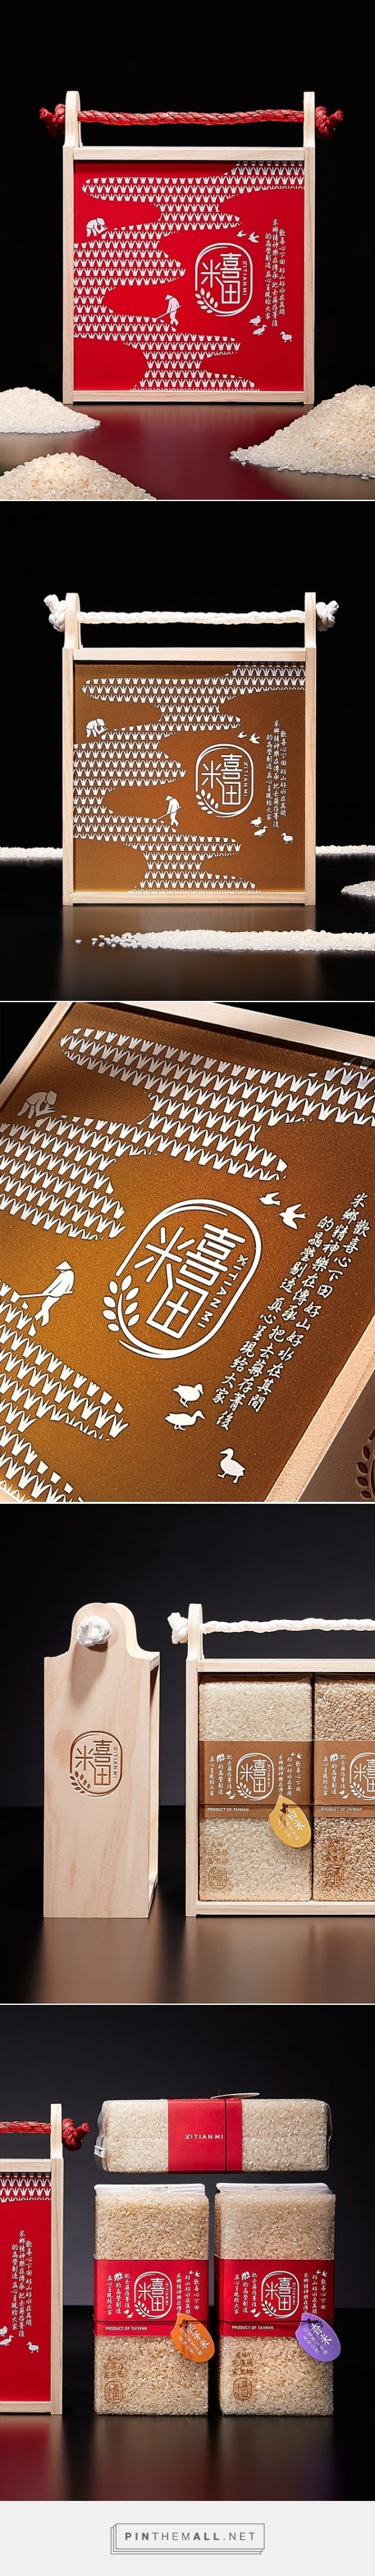 Xitian Mi on Packaging of the World - Creative Package Design Gallery - created via http://pinthemall.net